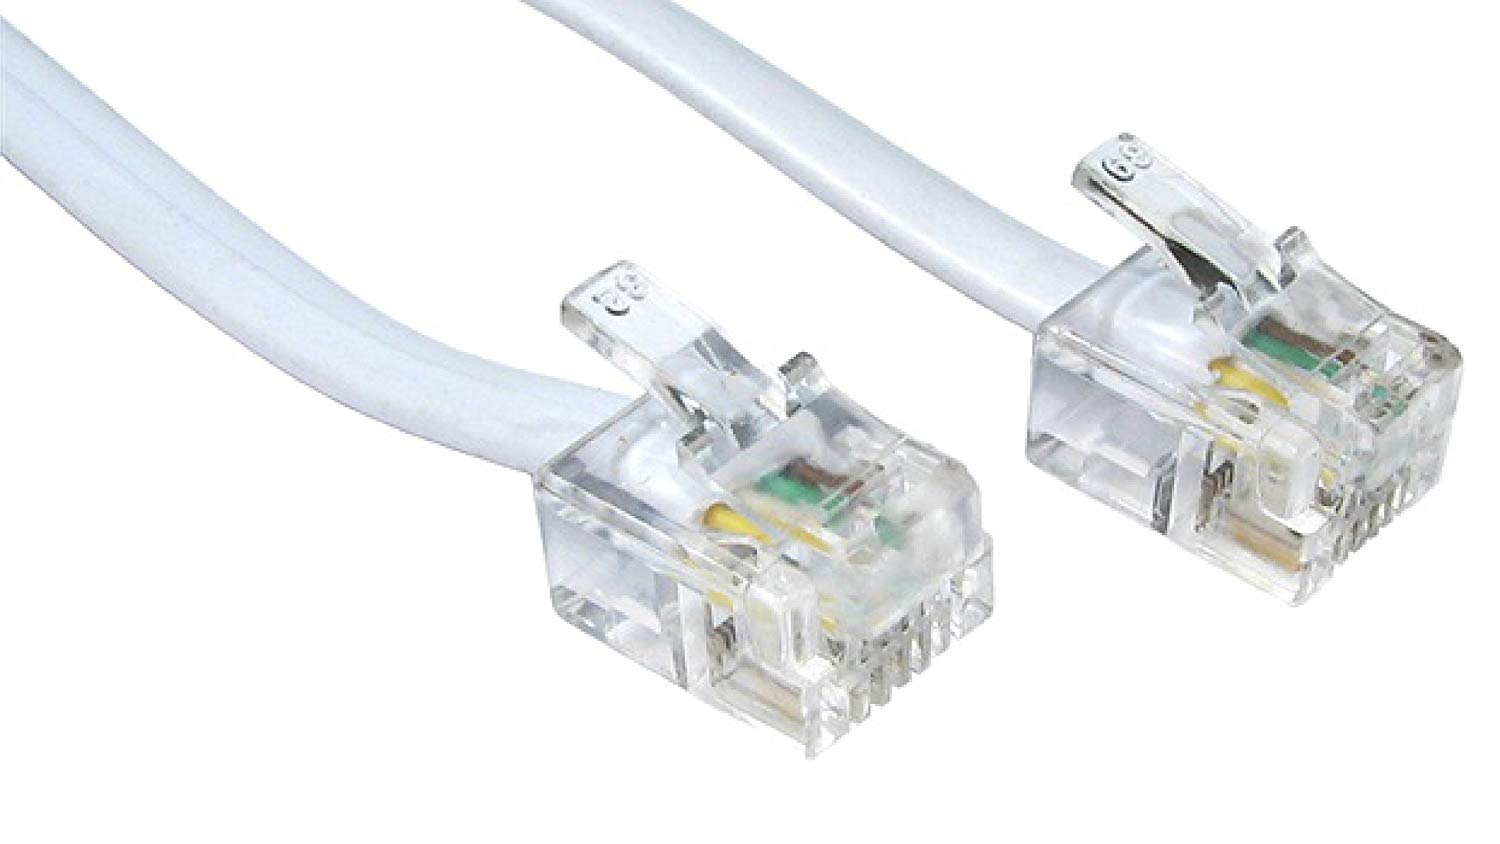 hight resolution of get quotations rhinocables rj11 adsl cable premium quality lead high speed male bt internet broadband modem router telephone